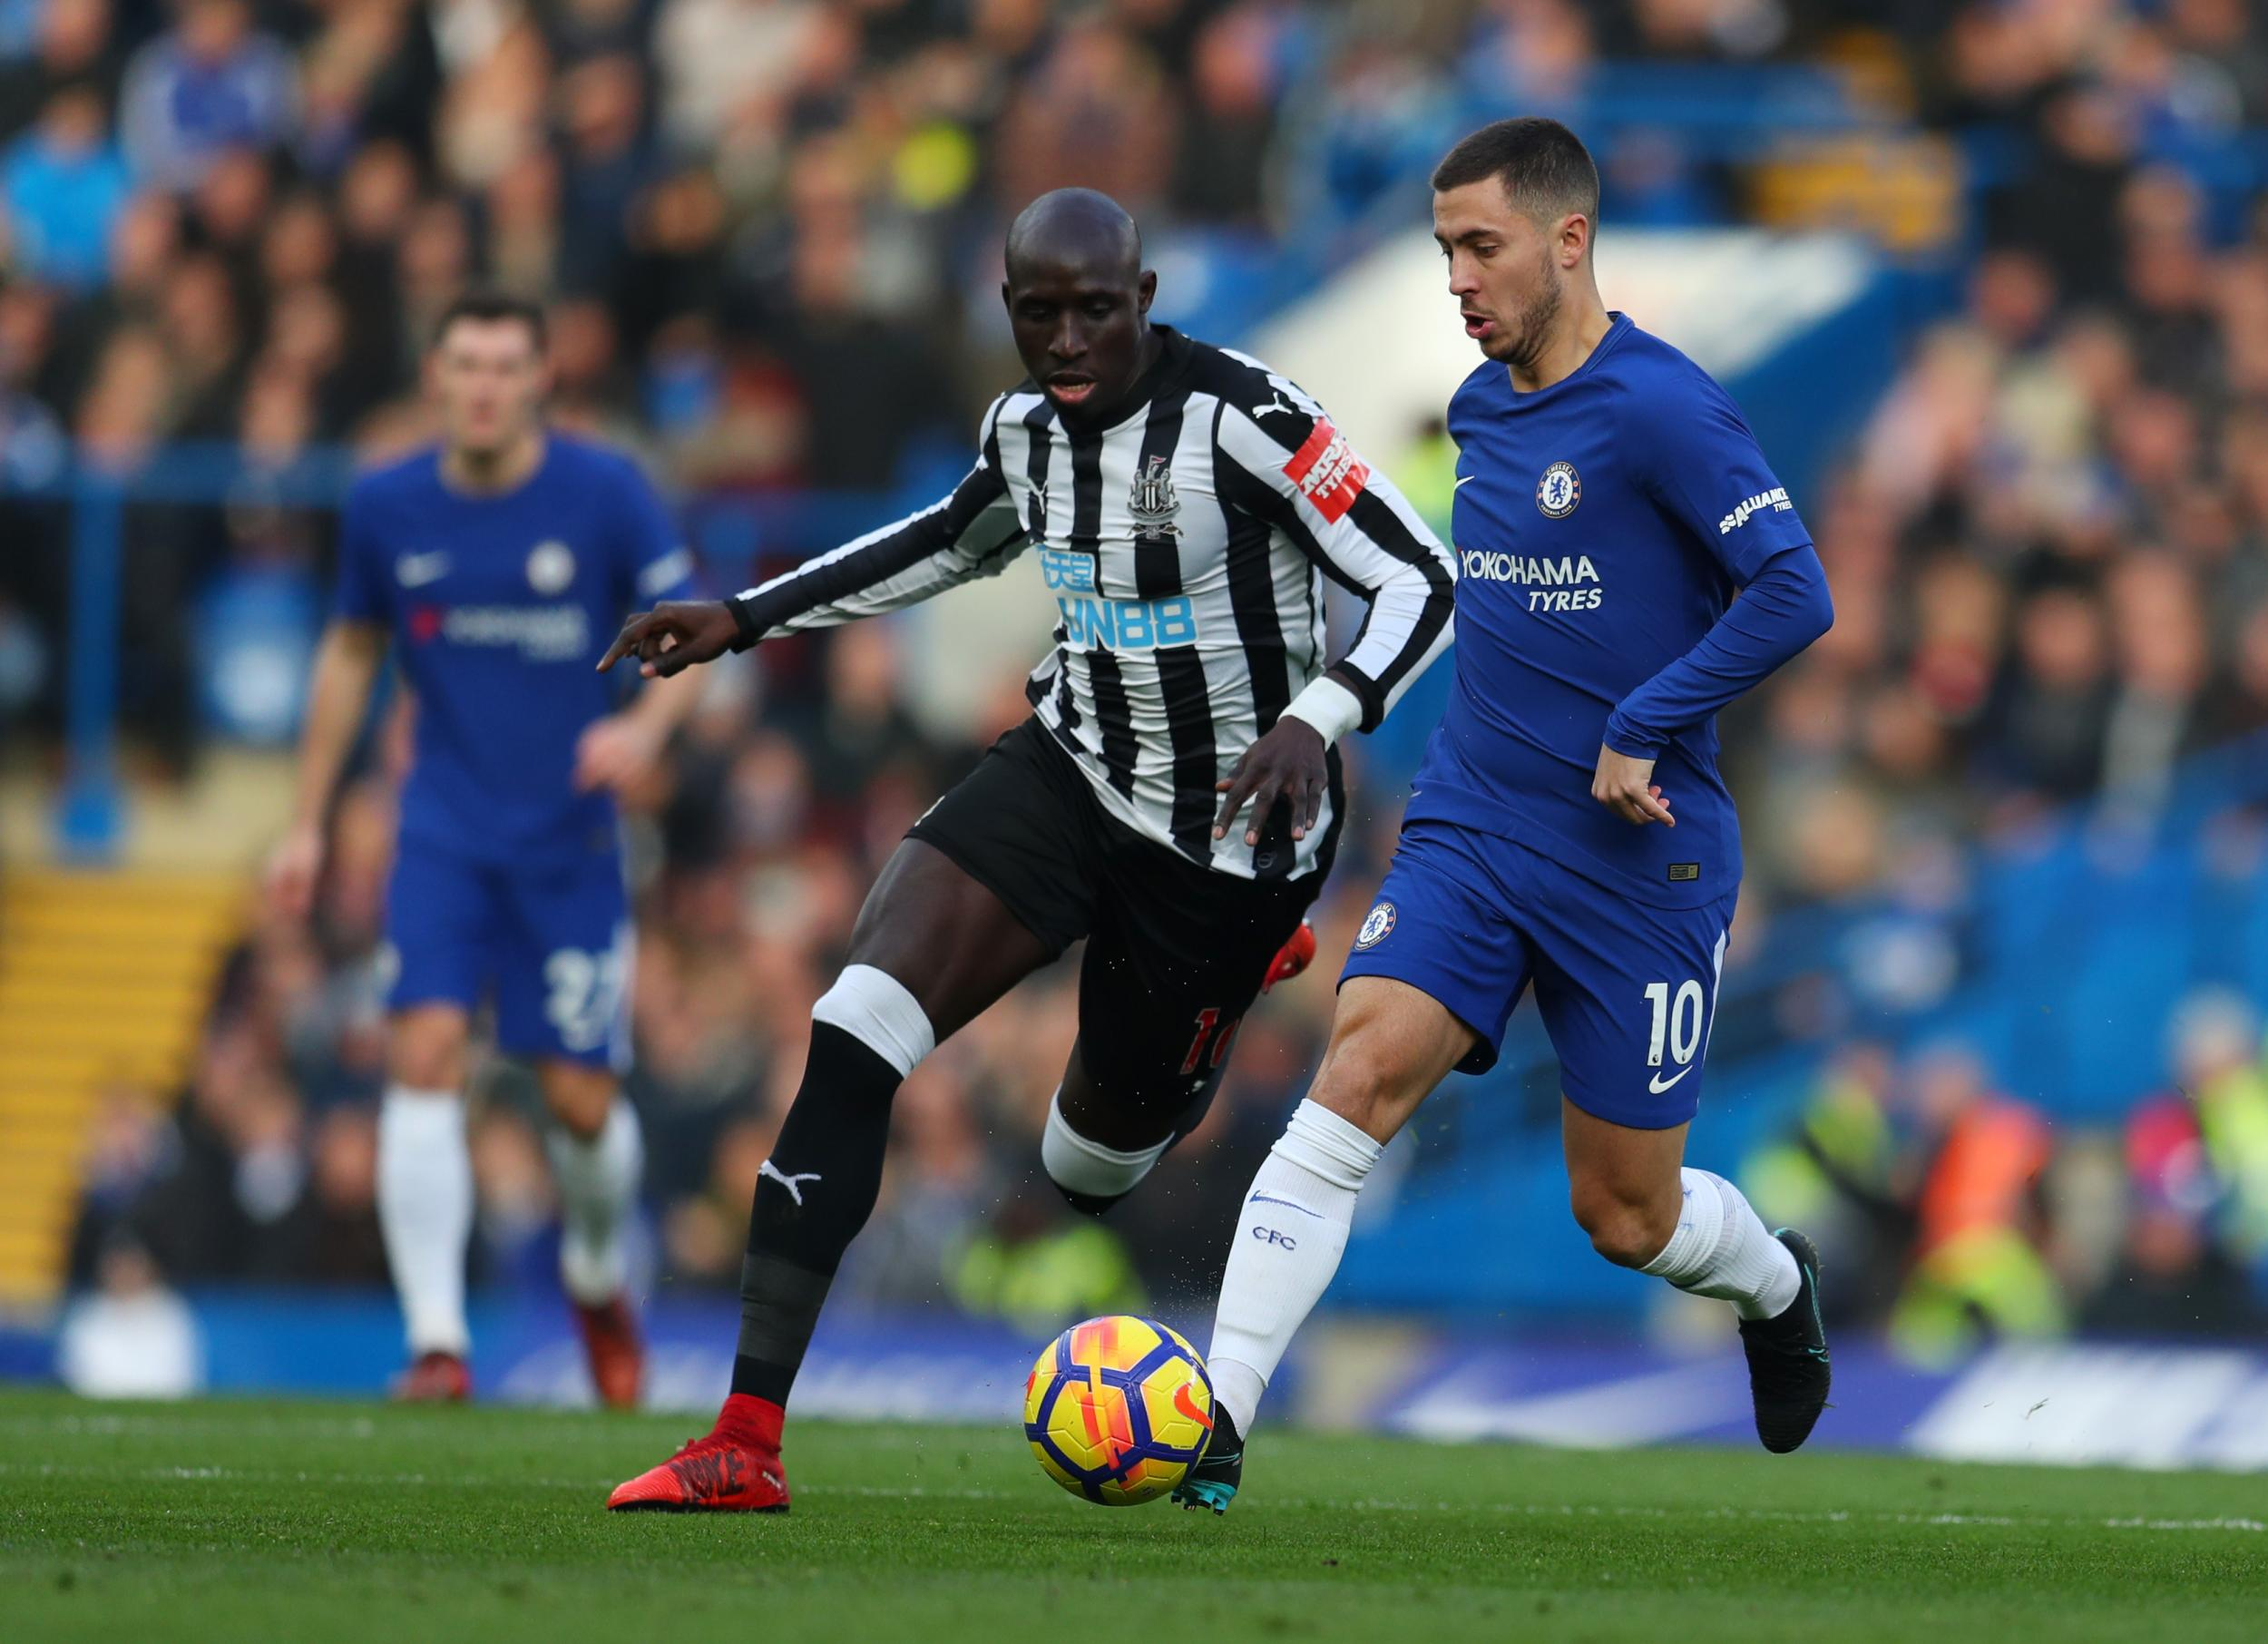 Chelsea Vs Newcastle  Free Premier League Picks Predictions And Odds Free Sports Picks Sports Odds Nfl Nba Ncaa Sports Chat